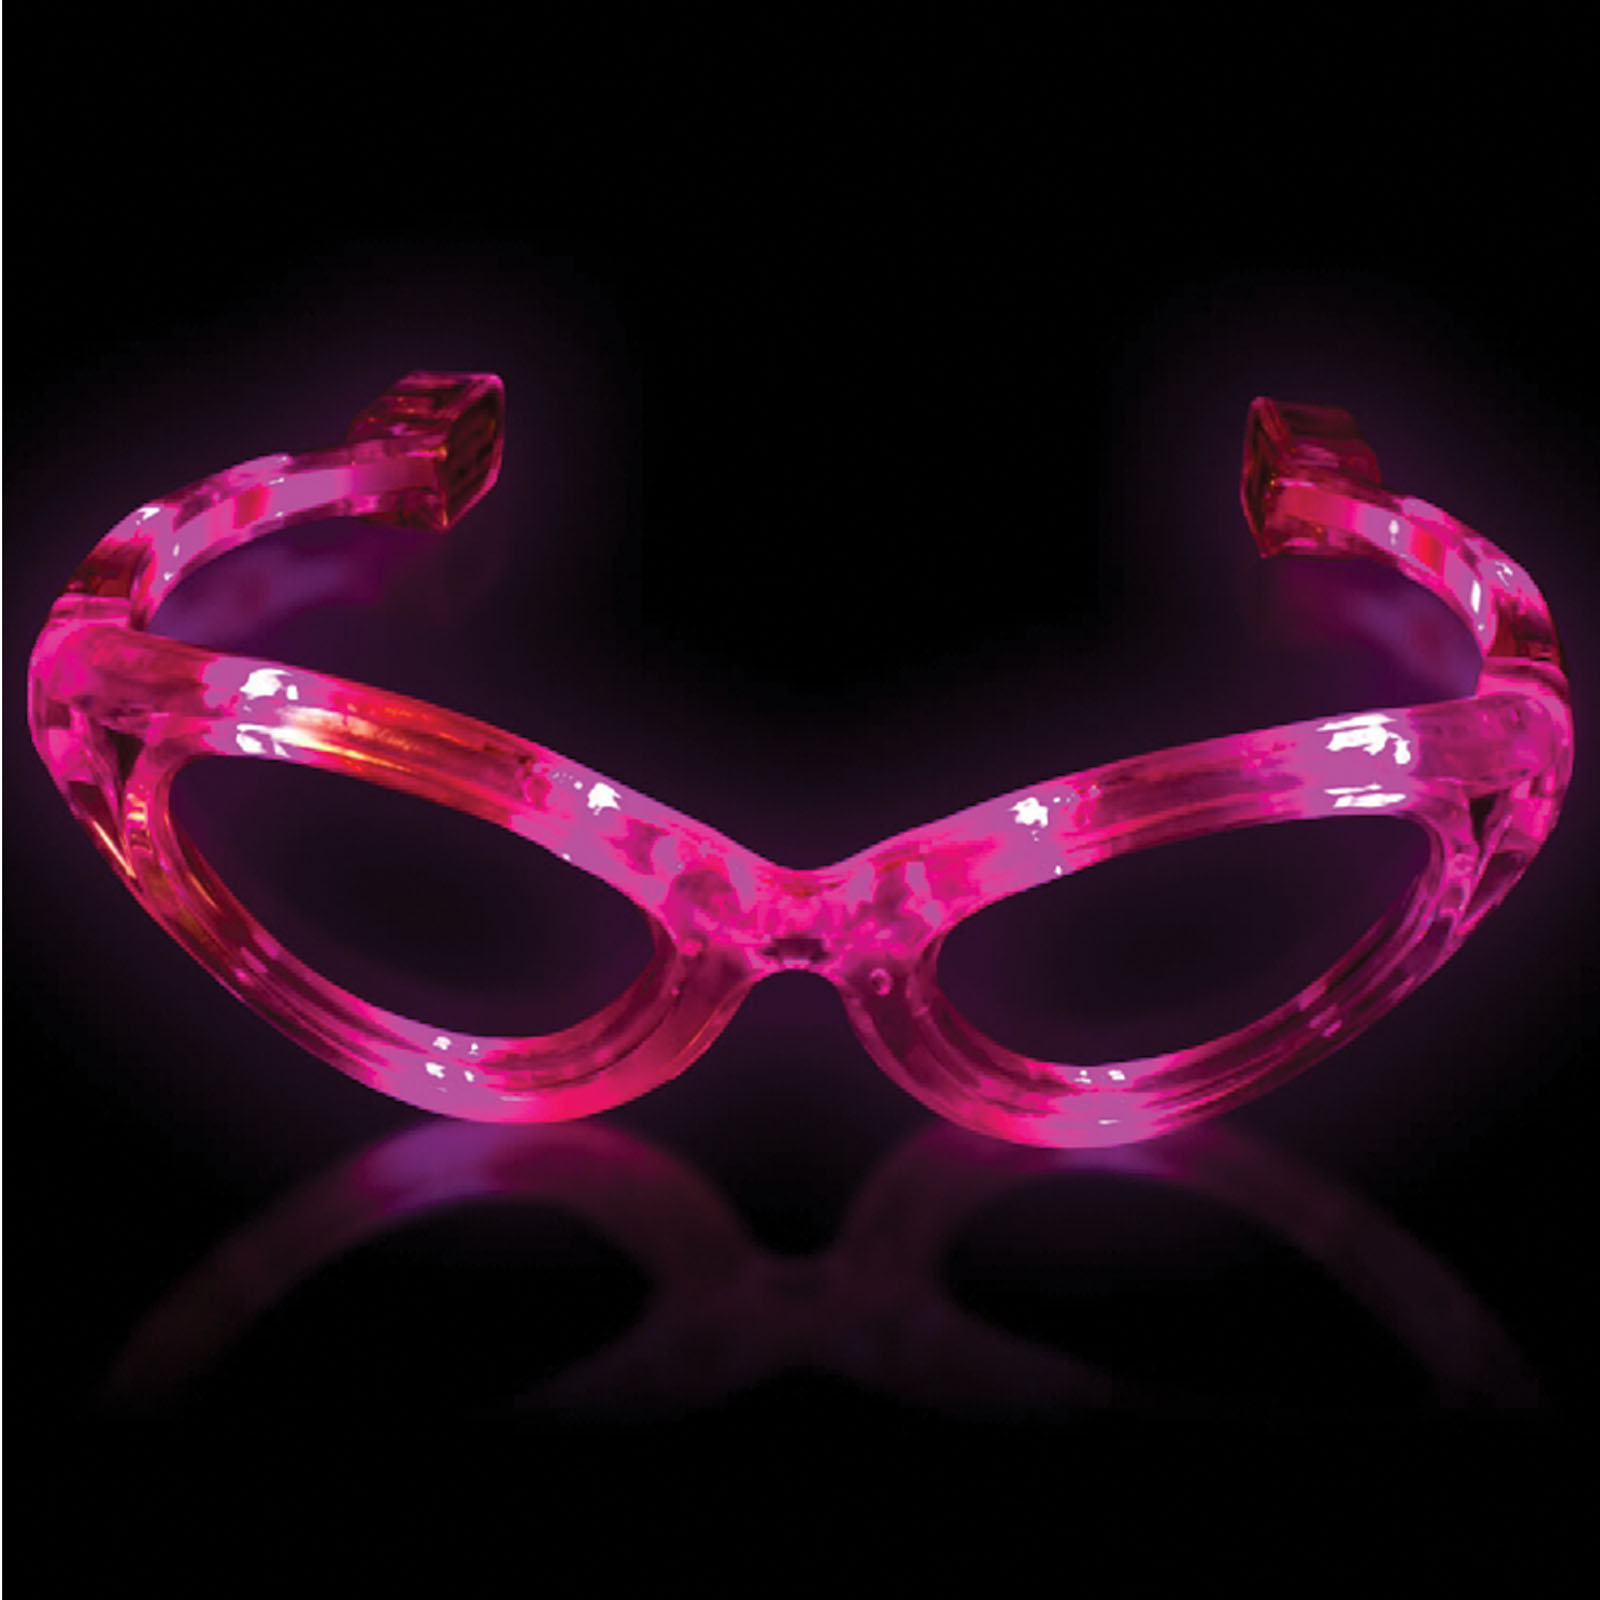 Supreme Light Up Blinking Sunglasses LED Glasses, Pink, One Size